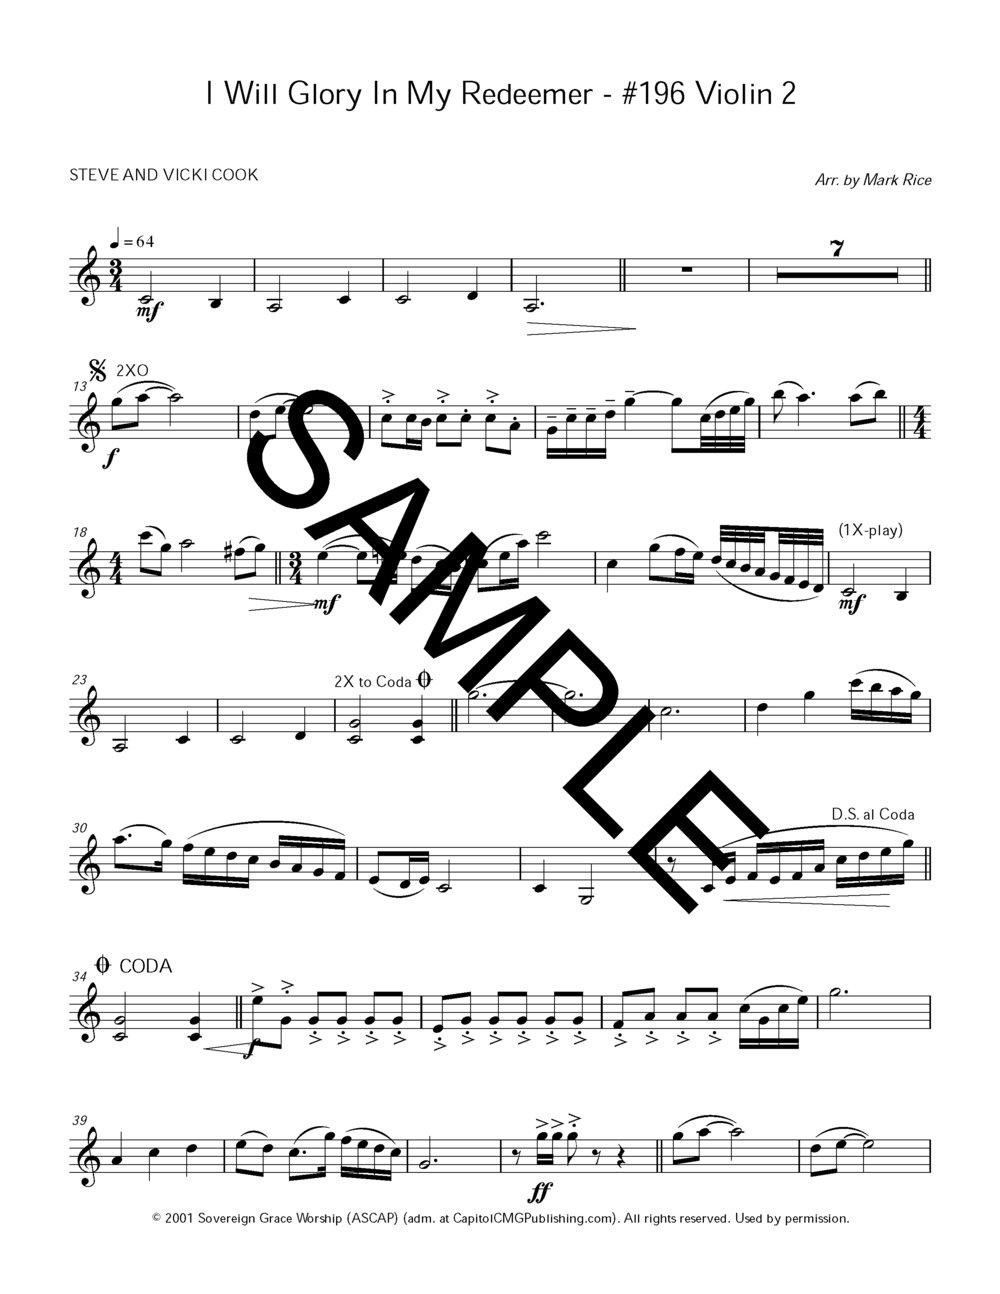 Sample I Will Glory in My Redeemer #196 Strngs Ob Piano Chrd Chrt Orgn M Rice arr_Page_31.jpg